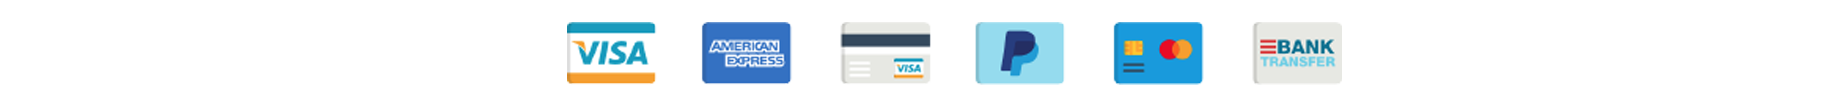 Payment Type Graphic.png